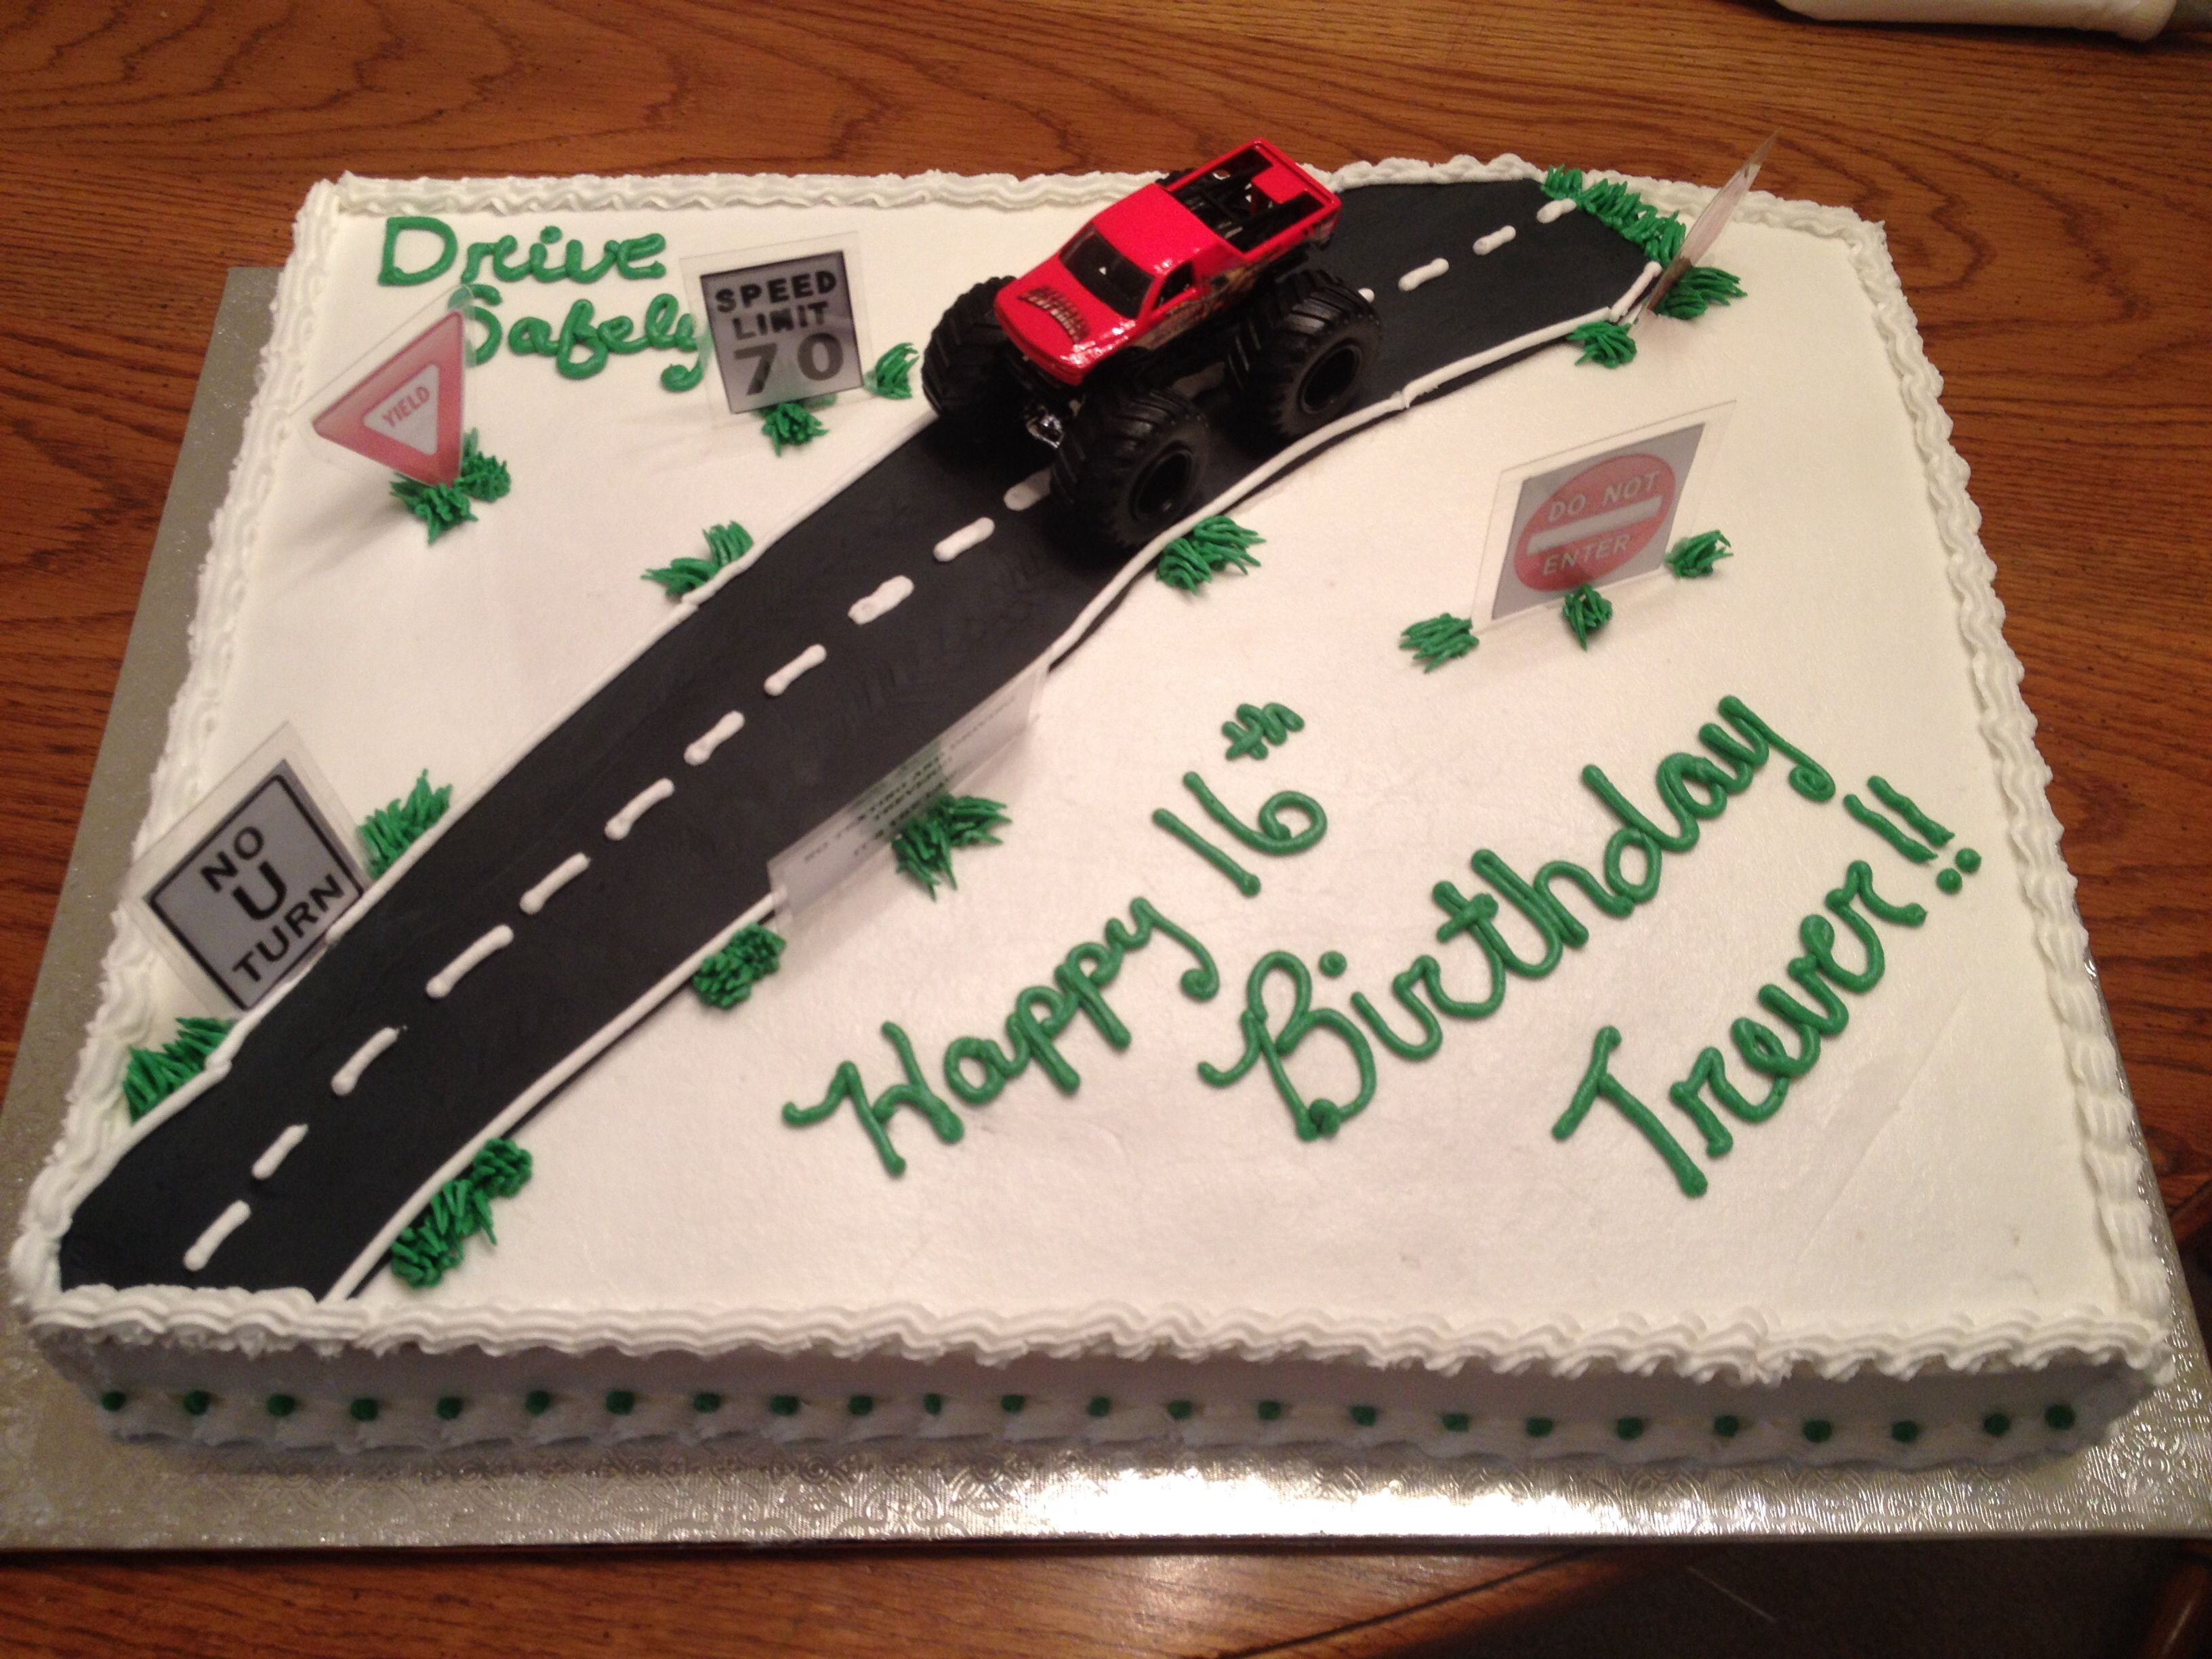 16th birthday cake new driver Cakes Pinterest 16th birthday